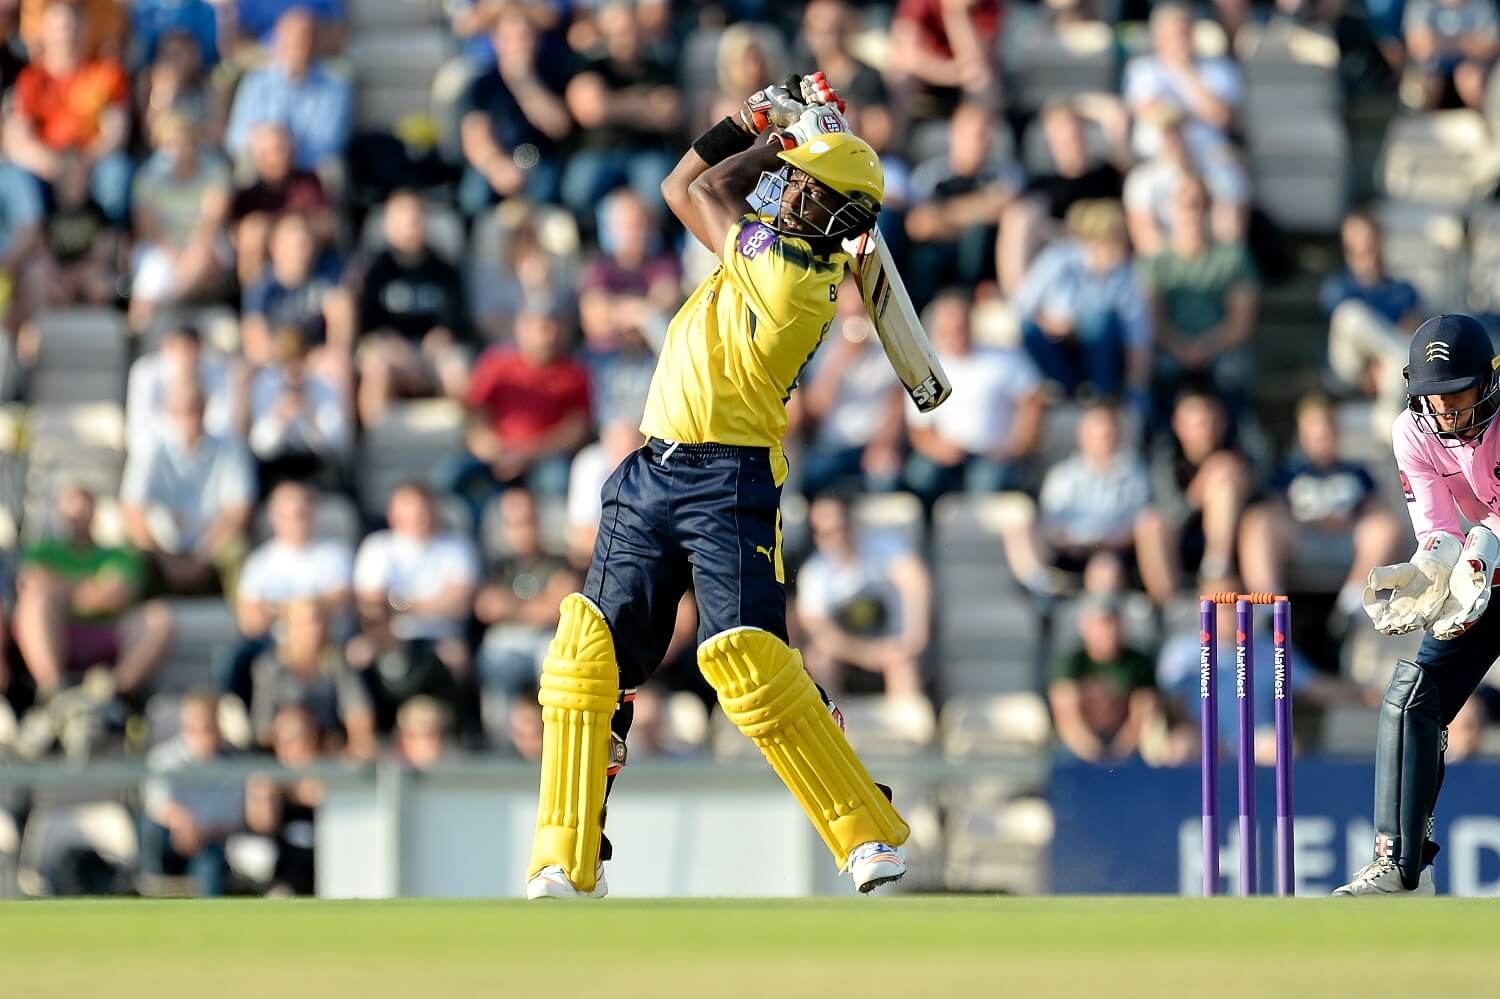 Onecom to sponsor Hampshire Cricket for NatWest T20 Blast Finals Day